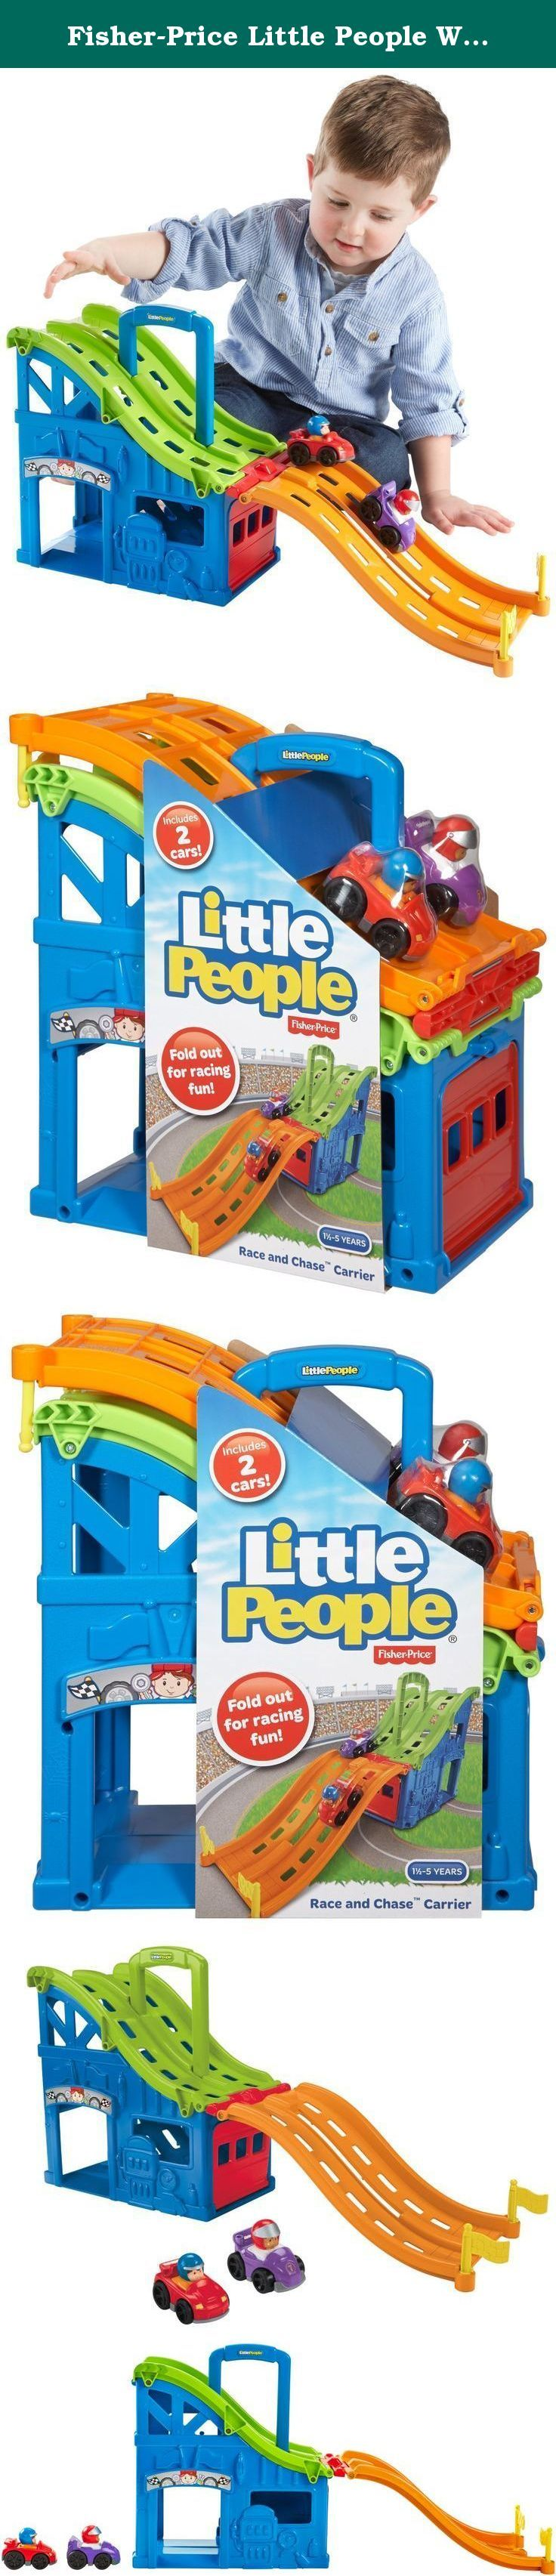 Fisher-Price Little People Wheelies Race and Chase Carrier. It's a race track that's a car carrier. It's a car carrier that's a race track. The Little People Wheelies Race and Chase Carrier is both-that's the beauty of it. When it's time to race, the track folds out, and kids can set the two Wheelies cars (included) at the top, send them zooming down the ramp and see which one wins! When it's time to put everything away for another day, the track folds back up, and the Wheelies cars store...